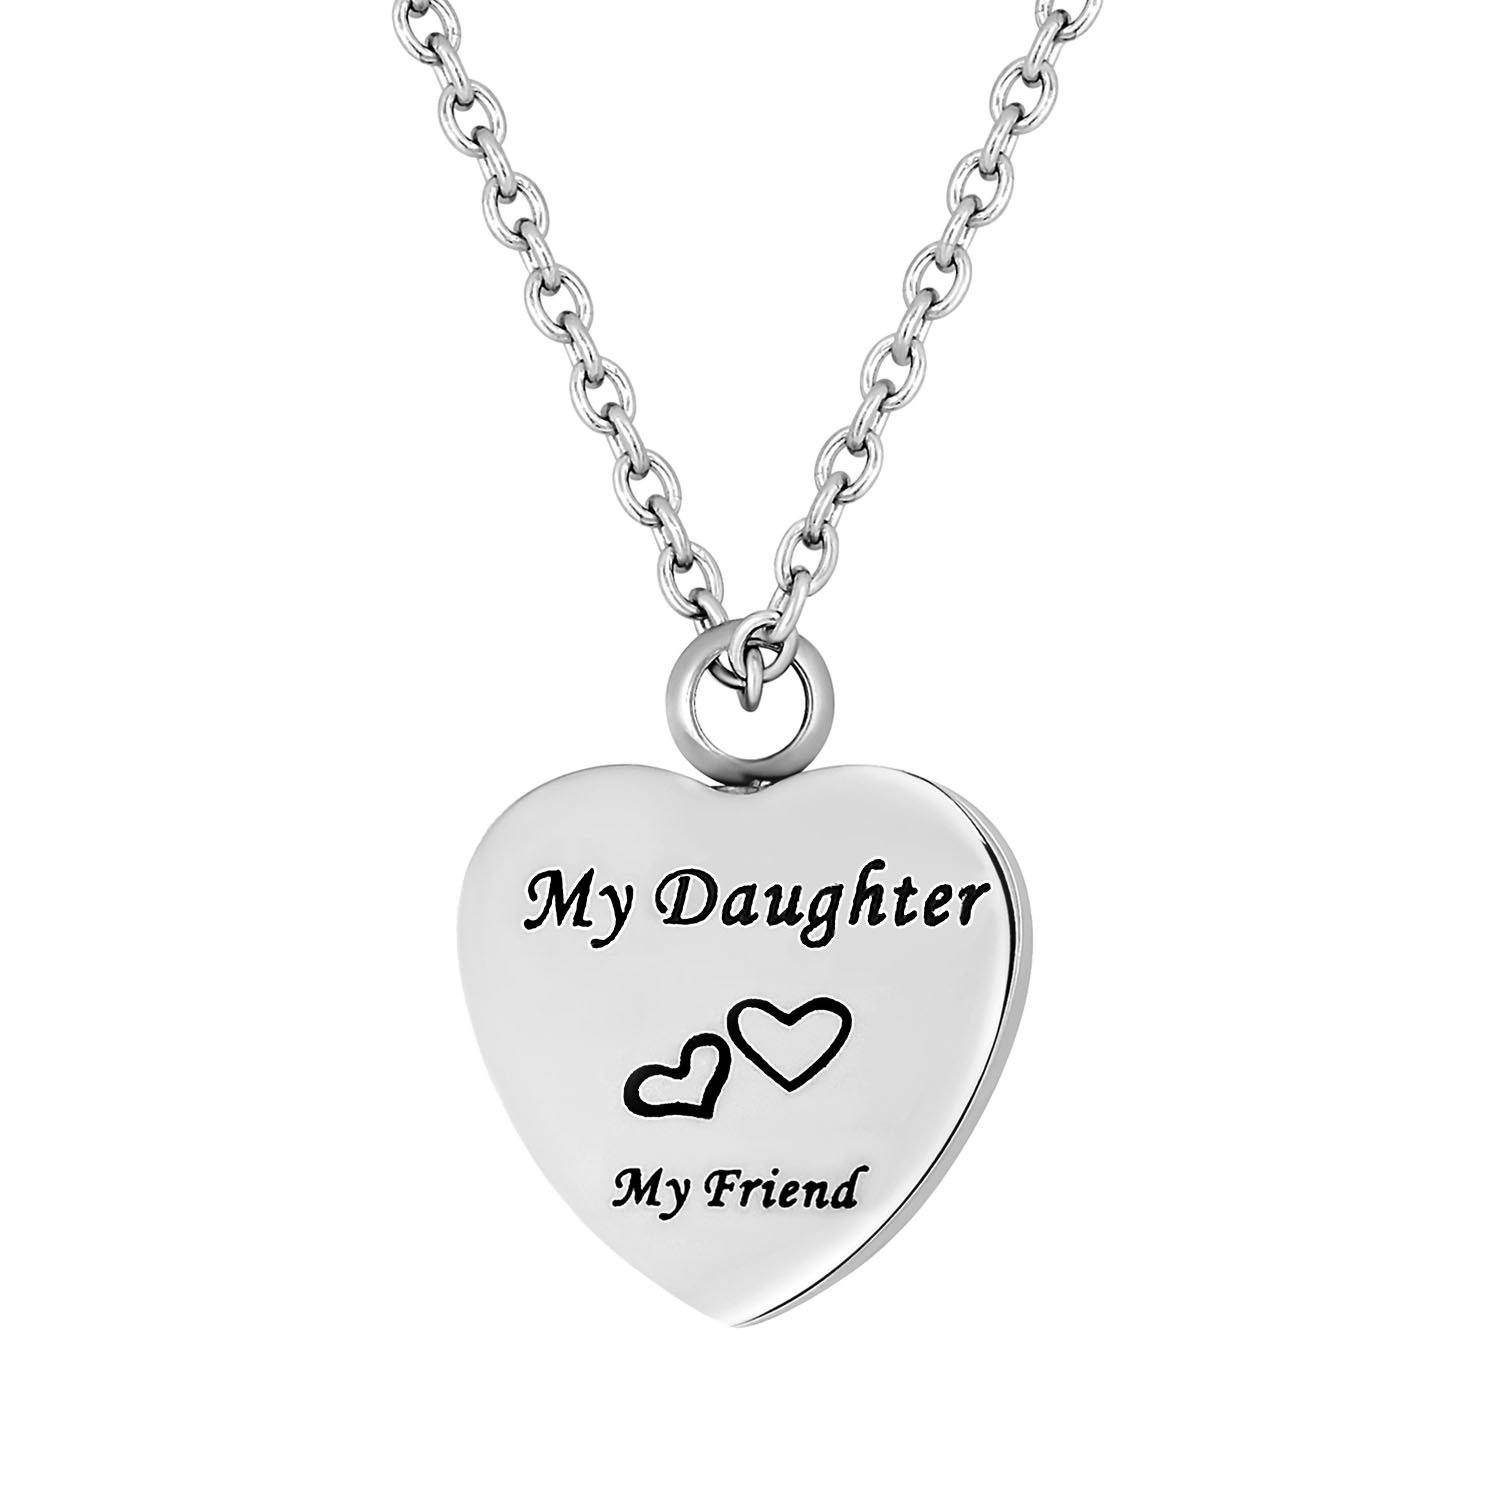 Cremation Jewelry Necklace for Ashes - My Daughter